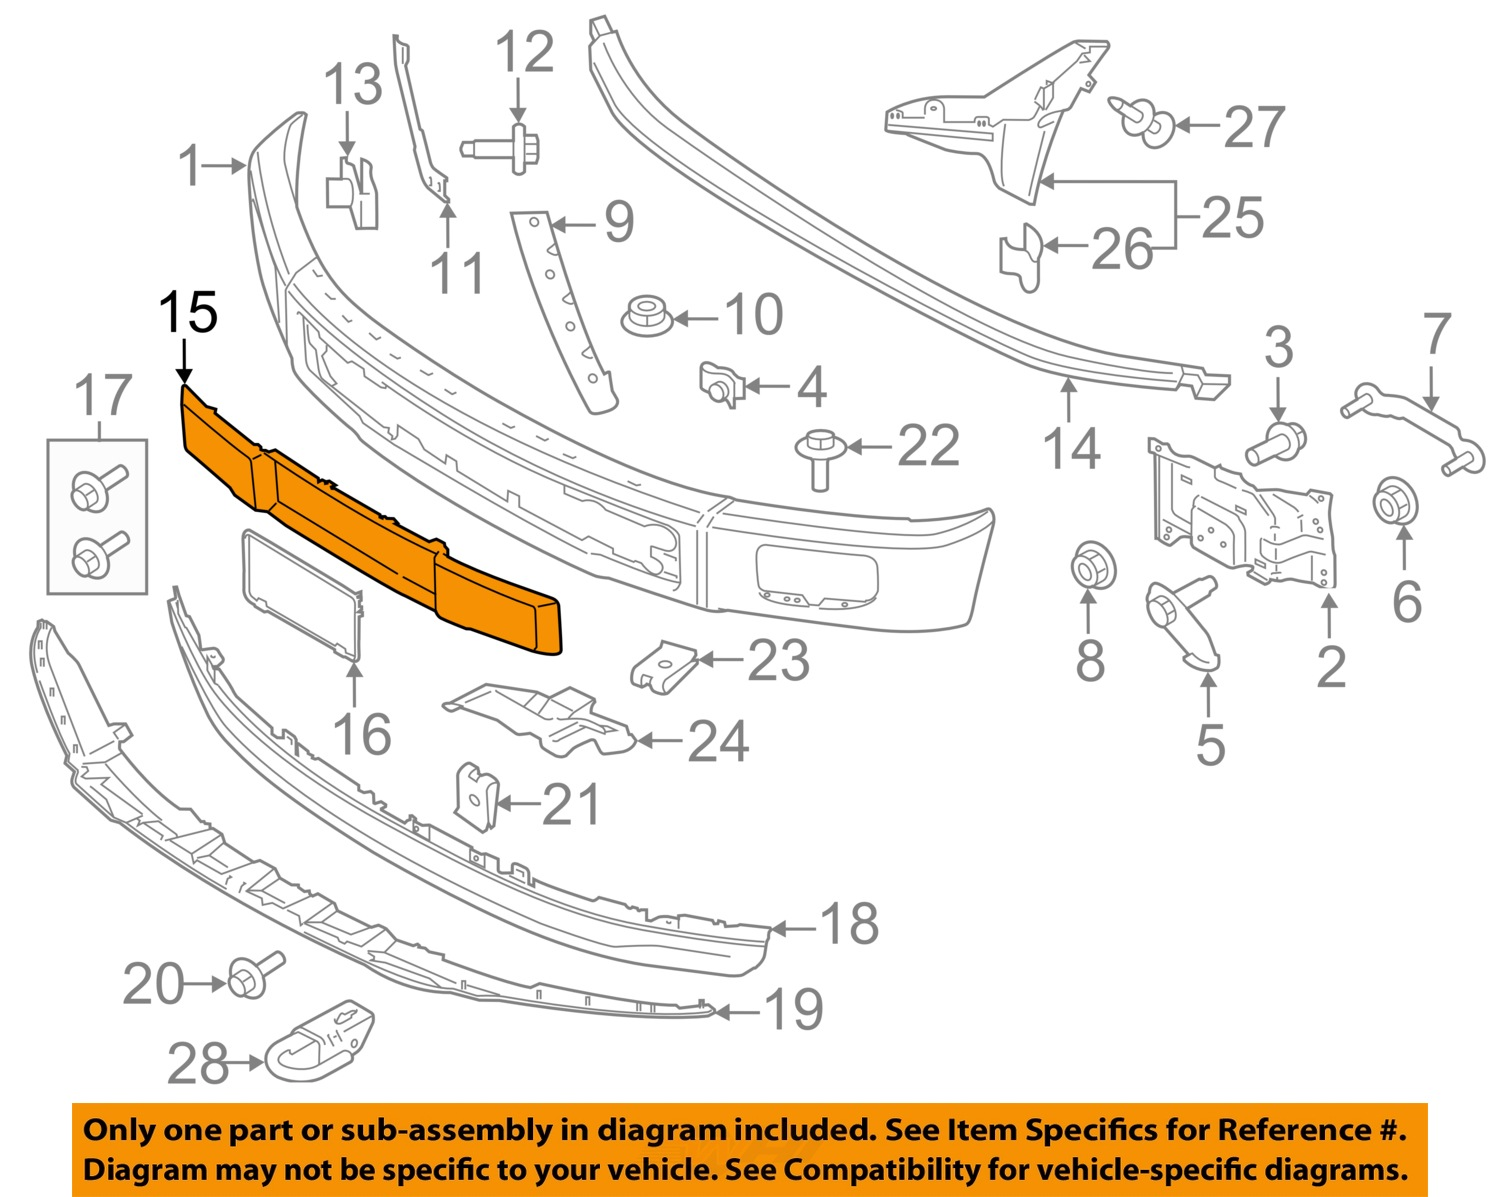 ford oem 15-16 f-150 front bumper-trim panel fl3z17e810ba ... to start on ford f 150 ignition solenoid diagram ford f 150 oem parts diagram